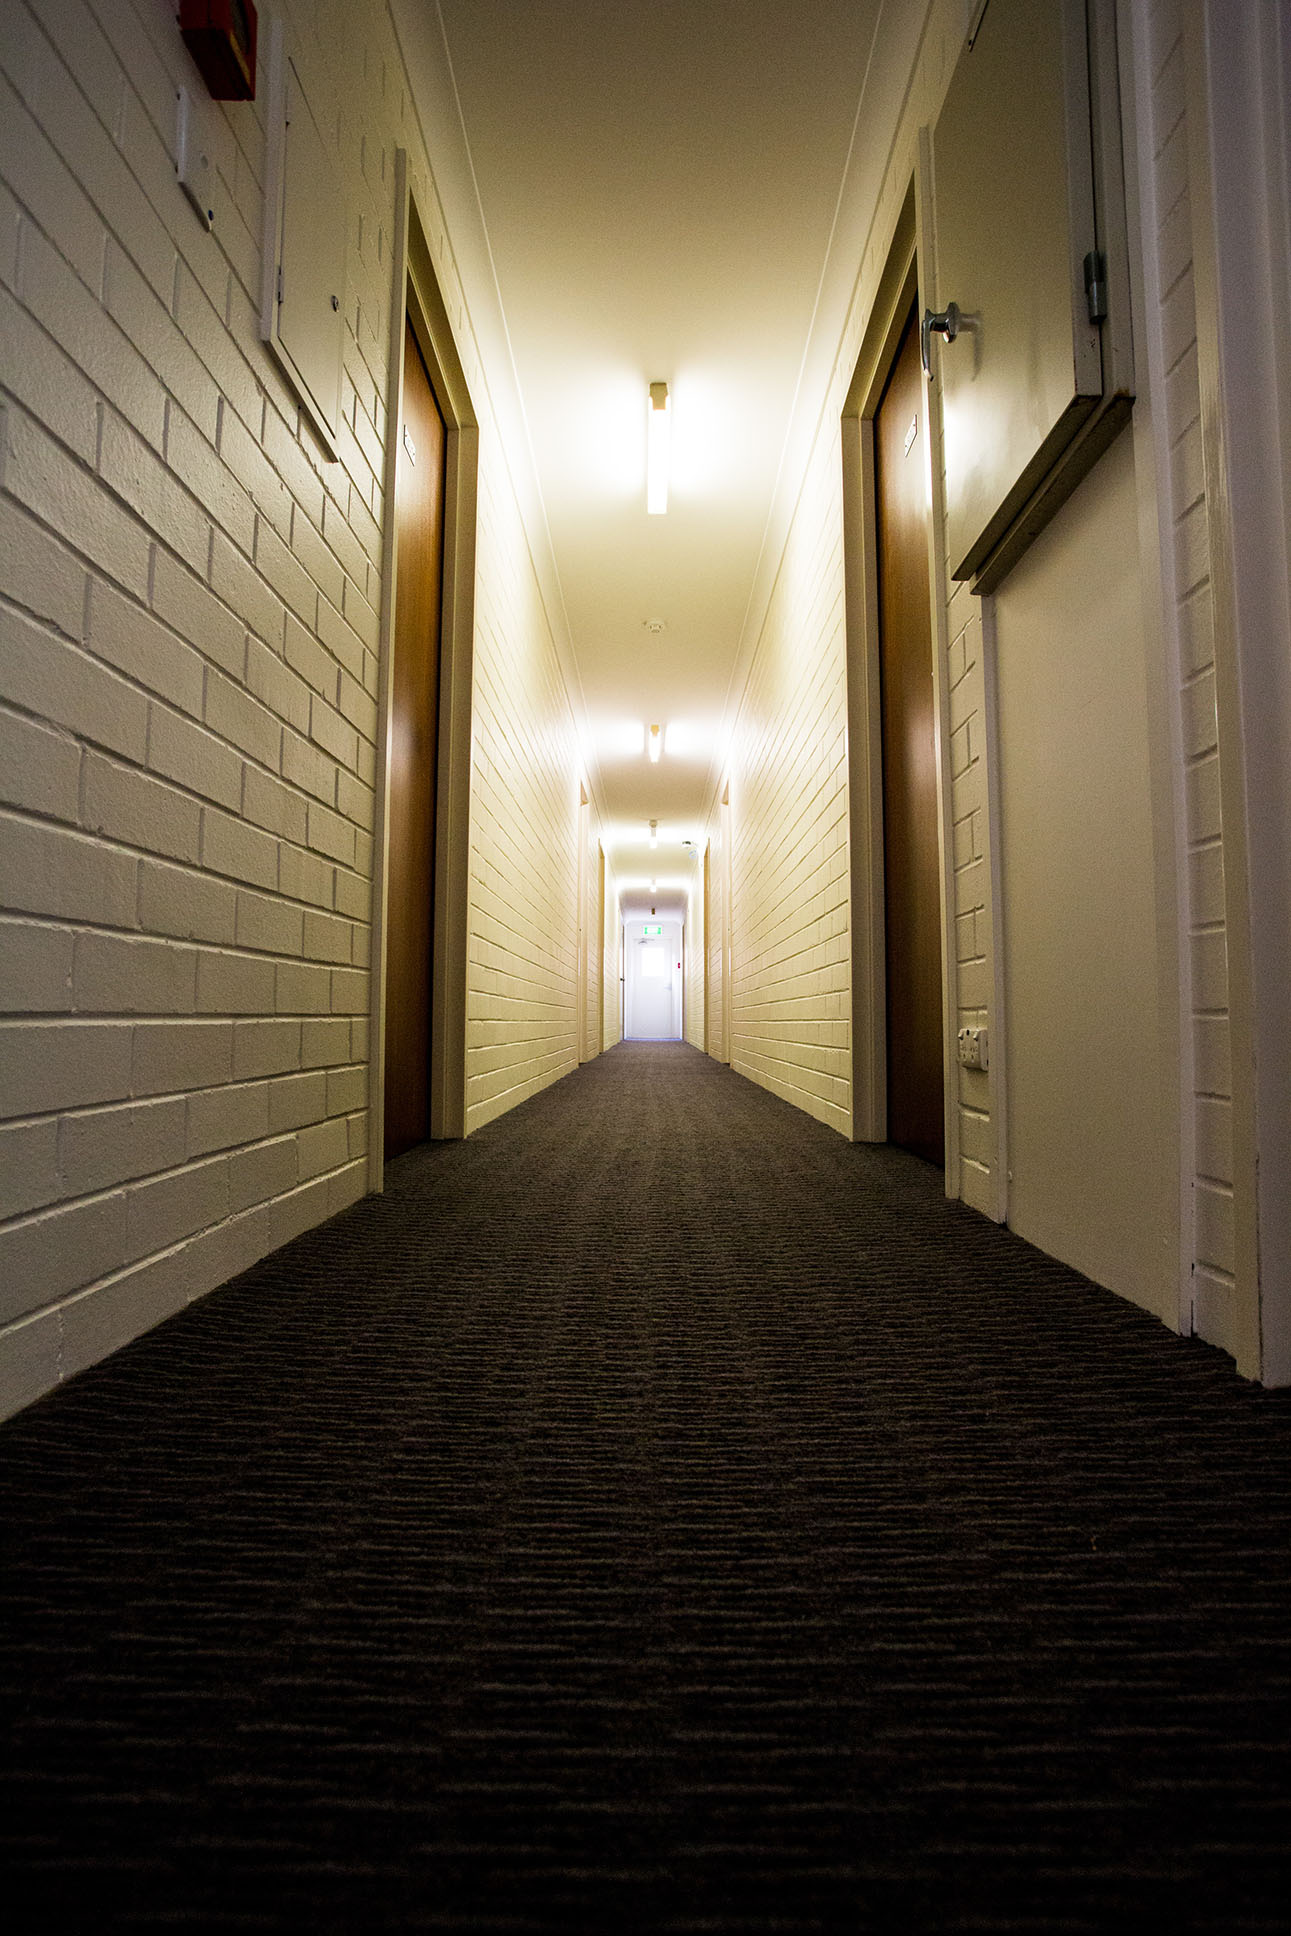 Corridor leading to our rooms